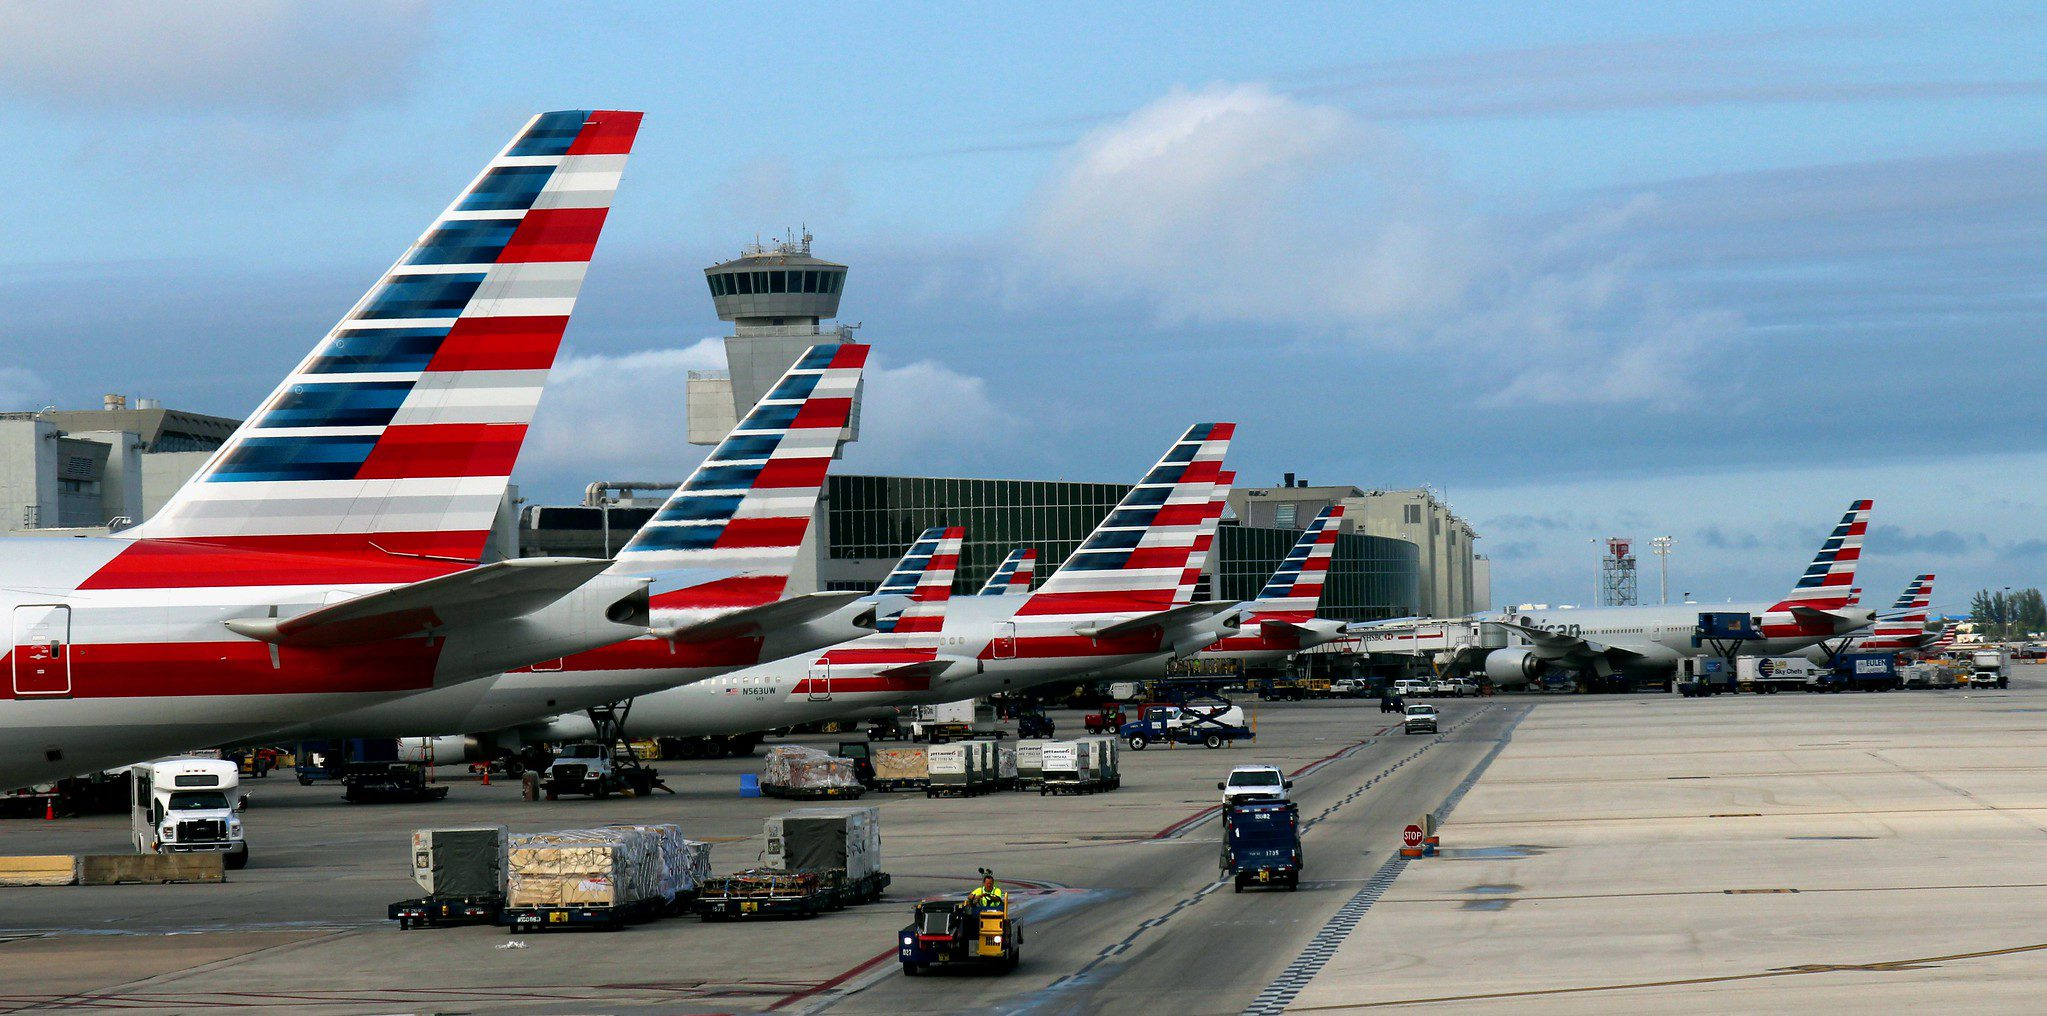 american-airlines-seeks-boeing's-help-to-avoid-max-cancellations